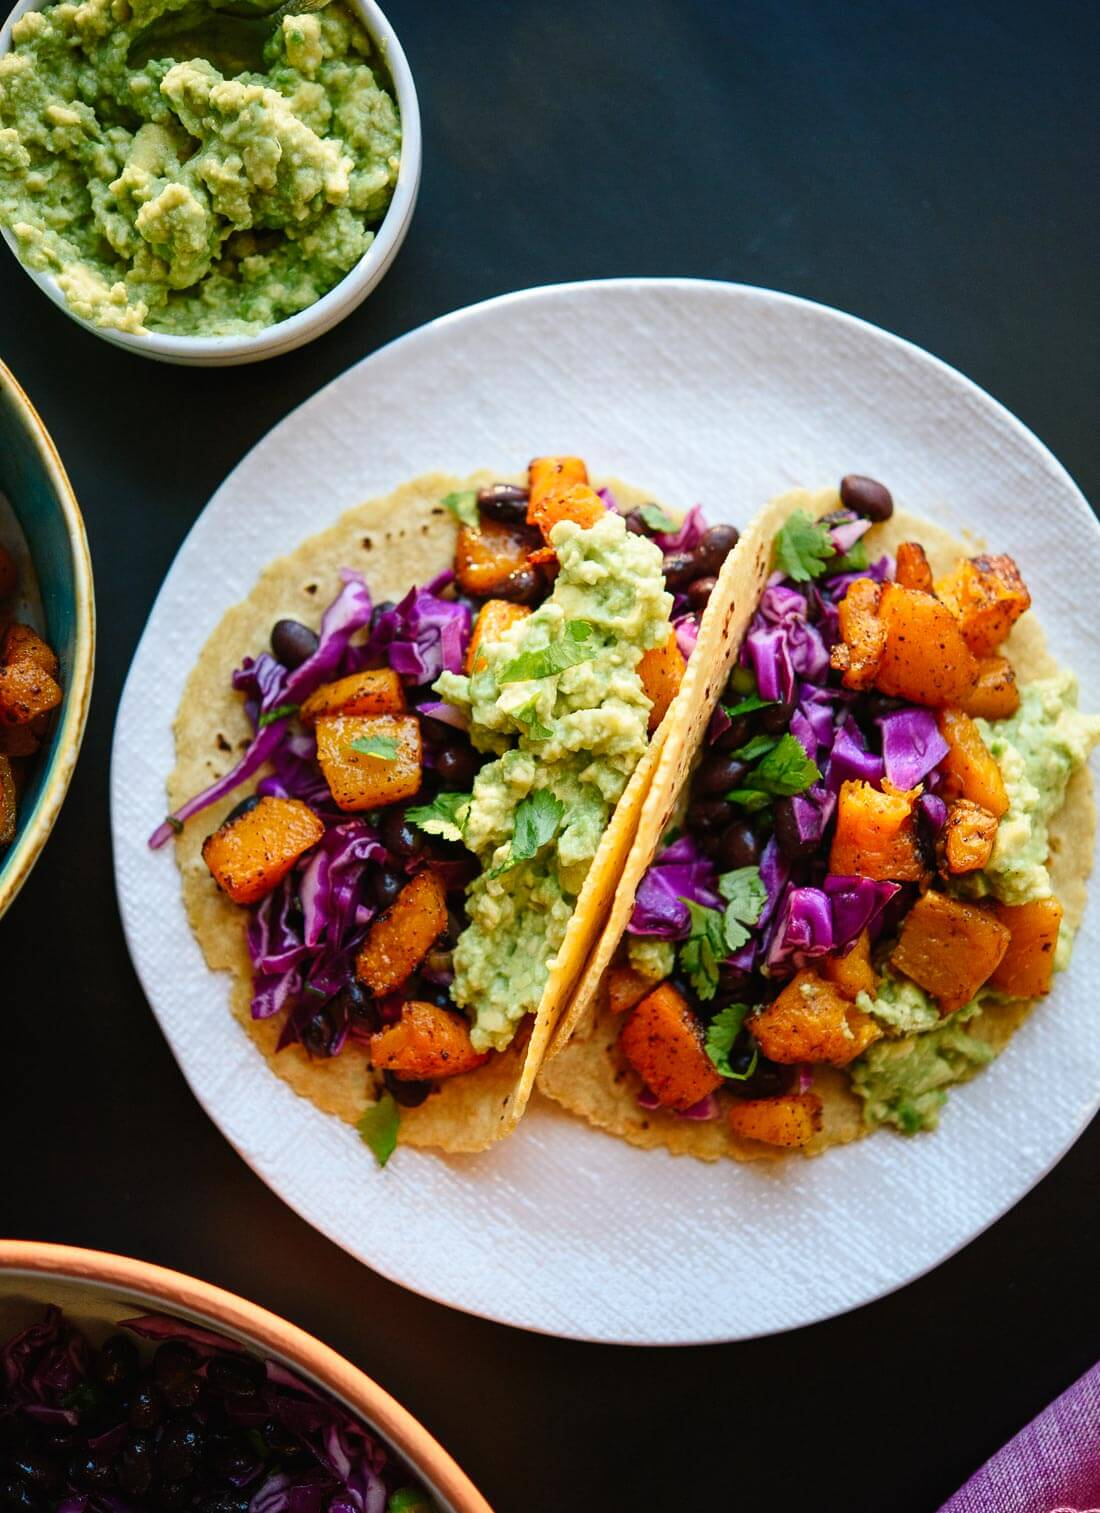 These roasted butternut squash tacos with slaw are bursting with flavor and so good for you, too. cookieandkate.com